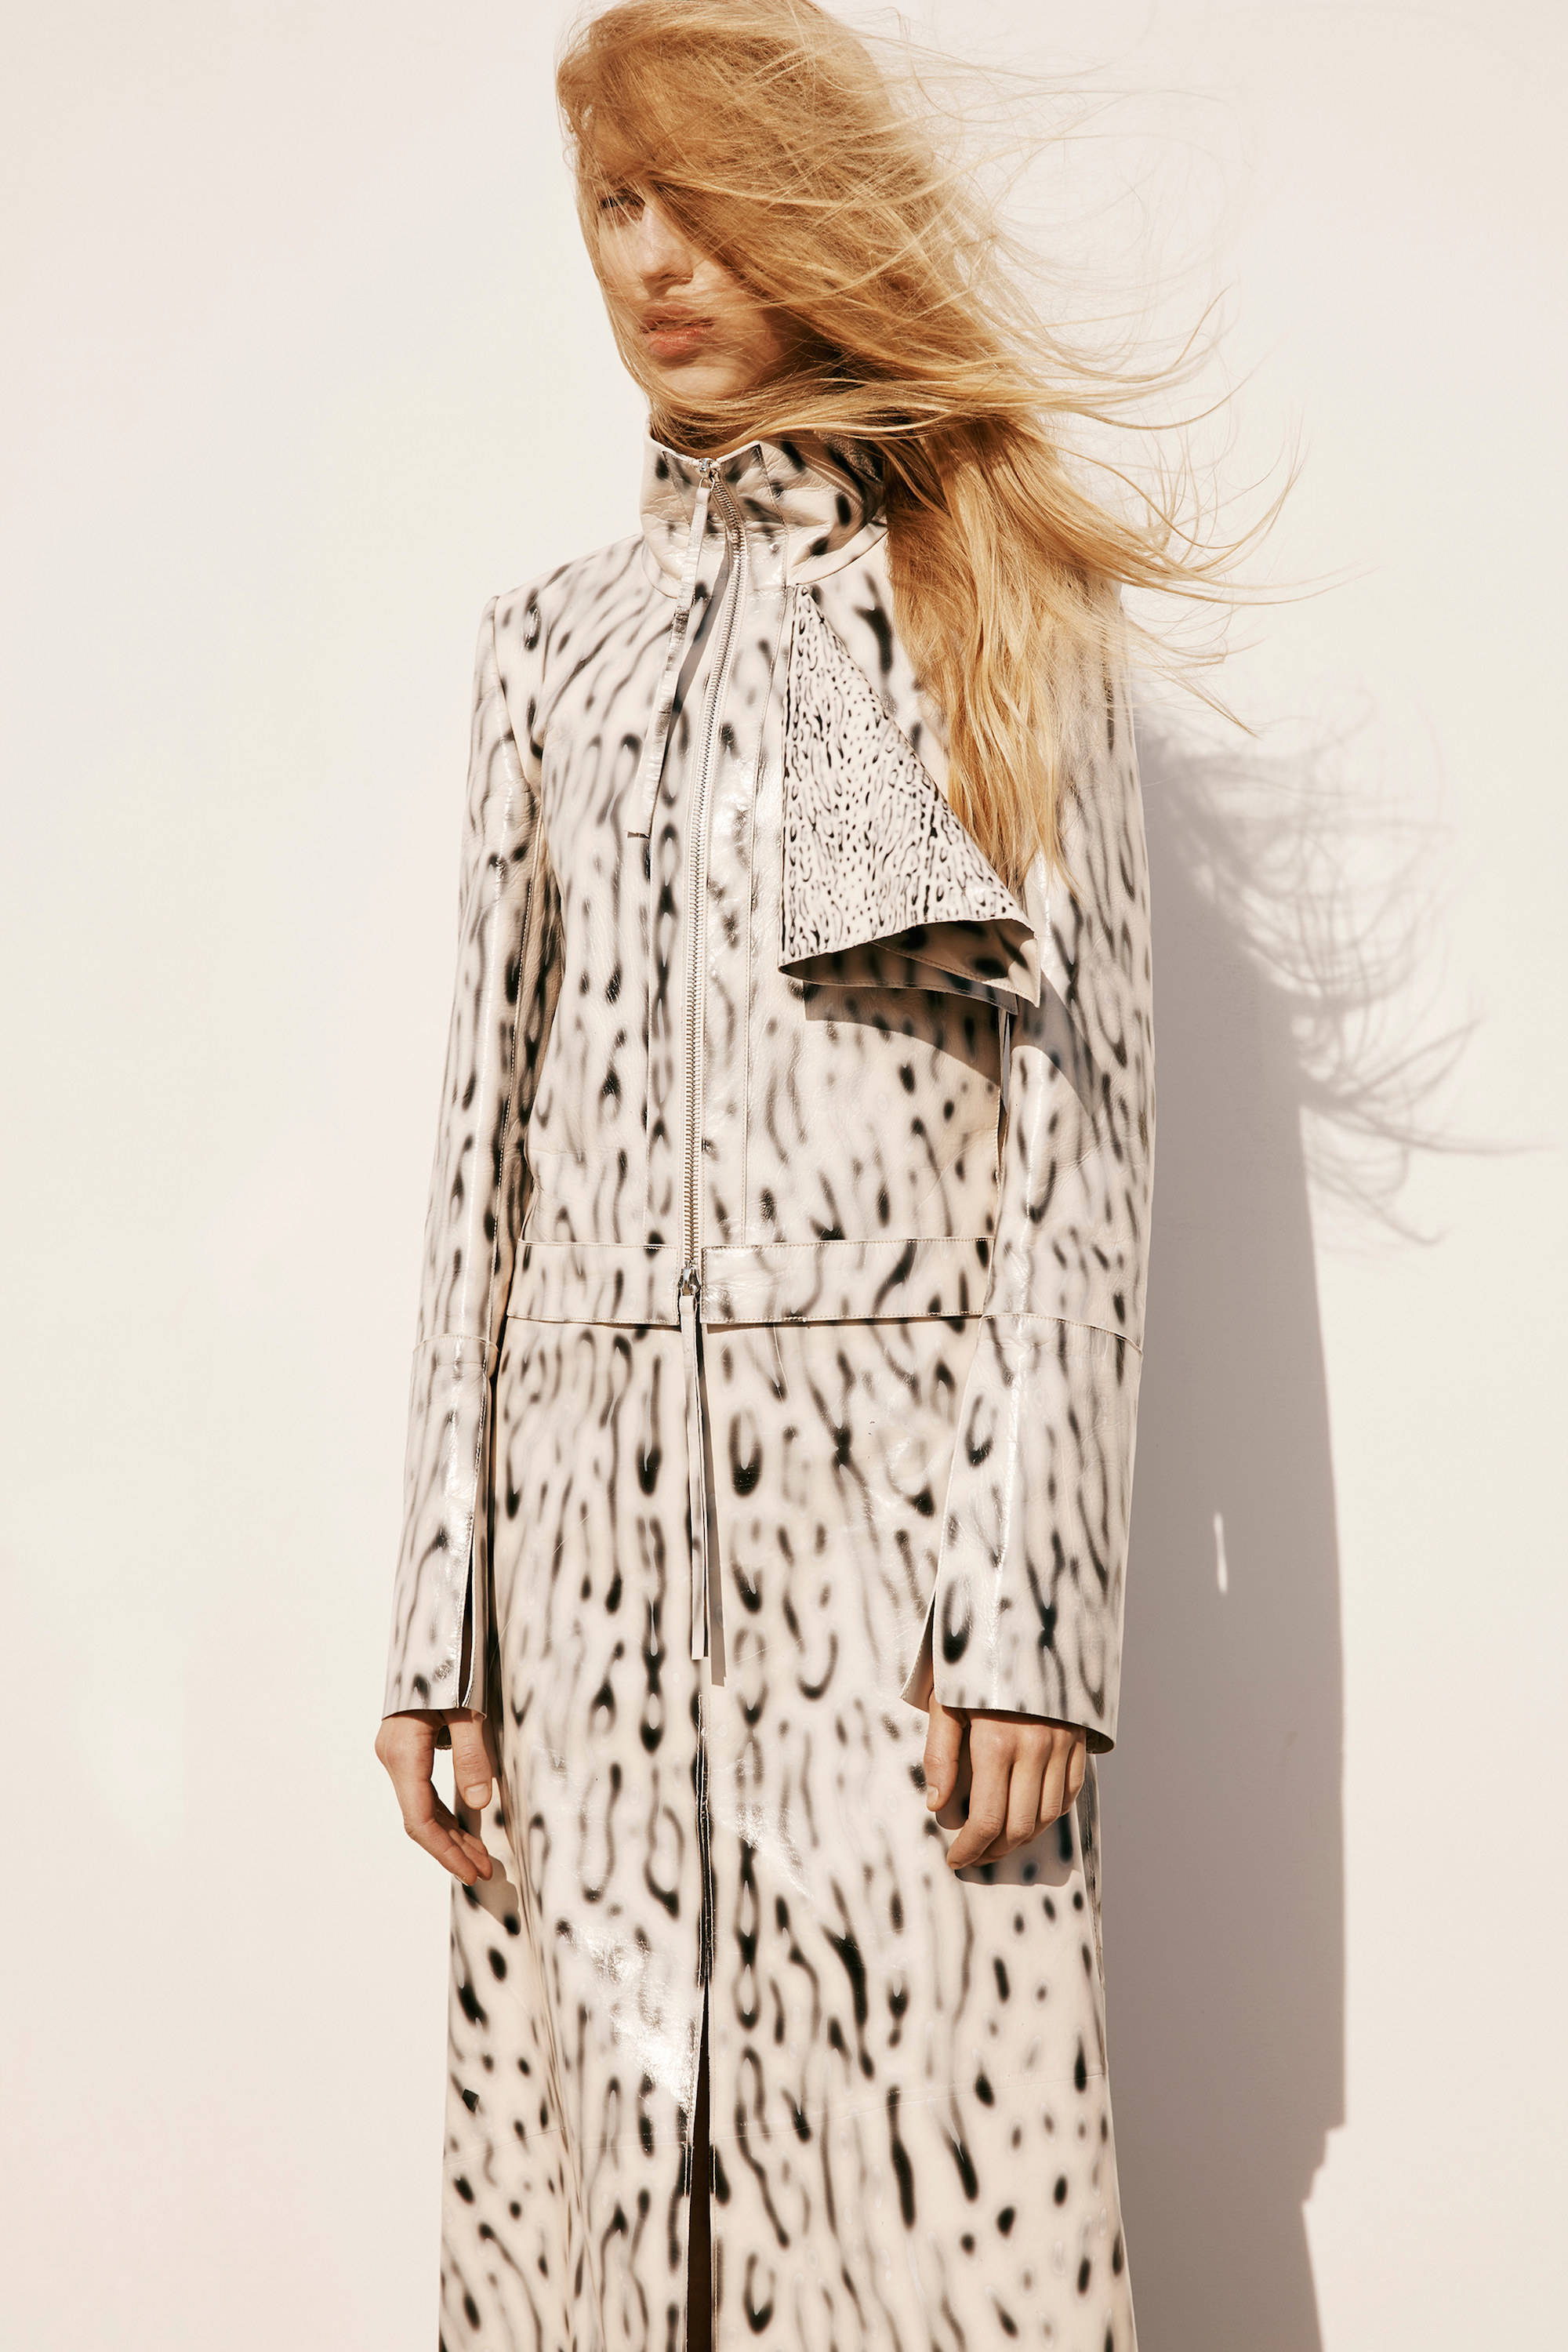 calvin-klein-collection-pre-fall-2016-lookbook-13.jpg